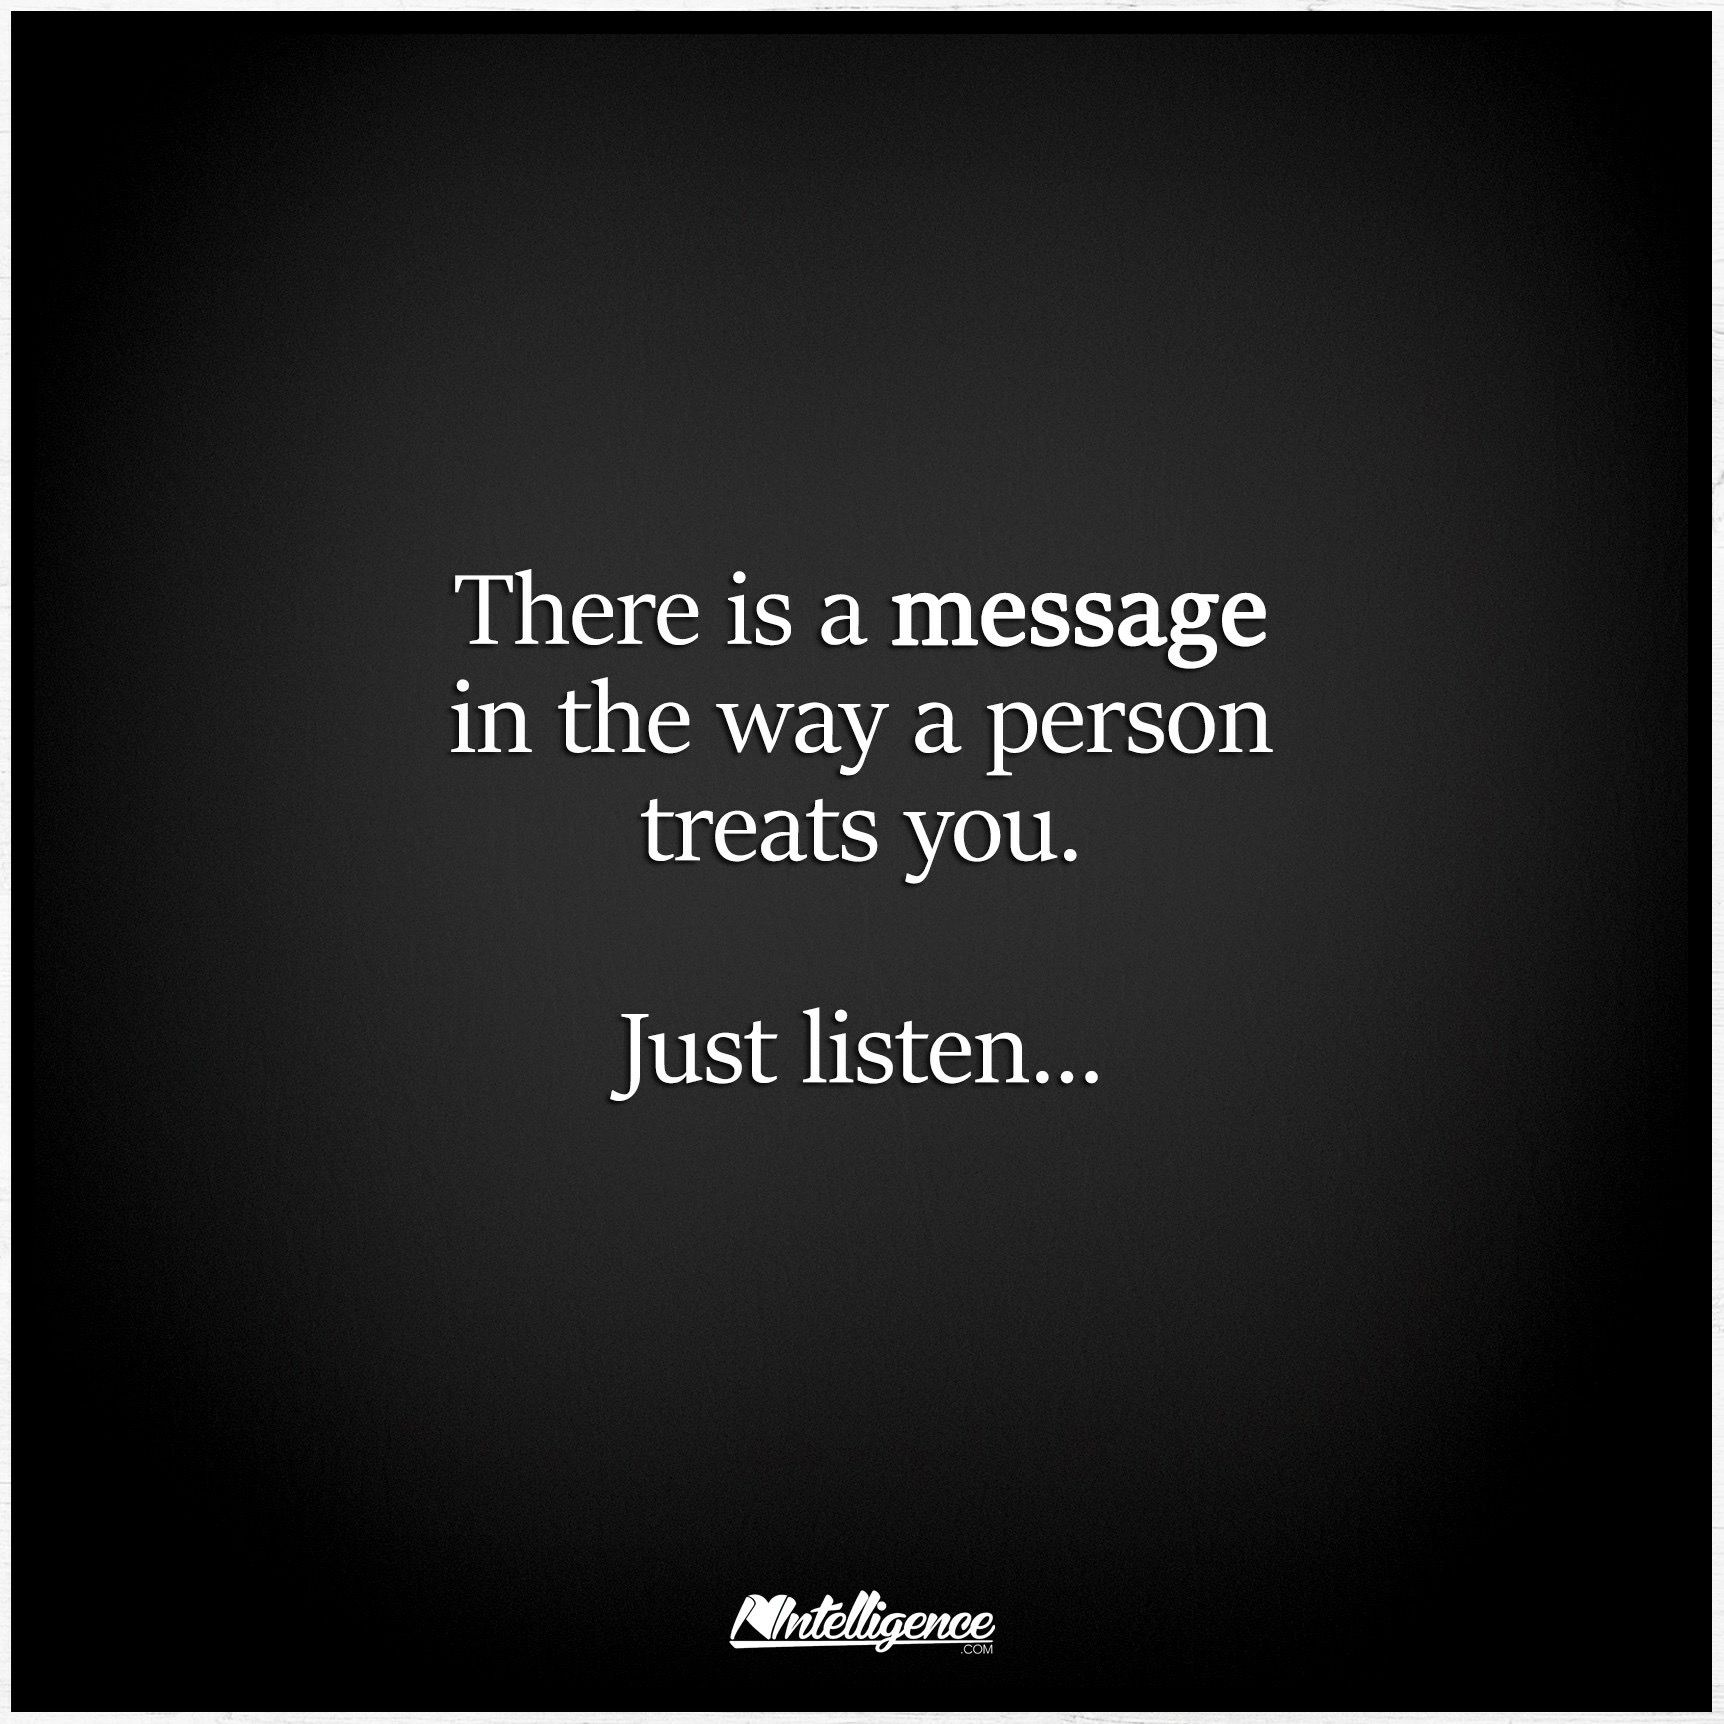 There is a message in the way a person treats you   just